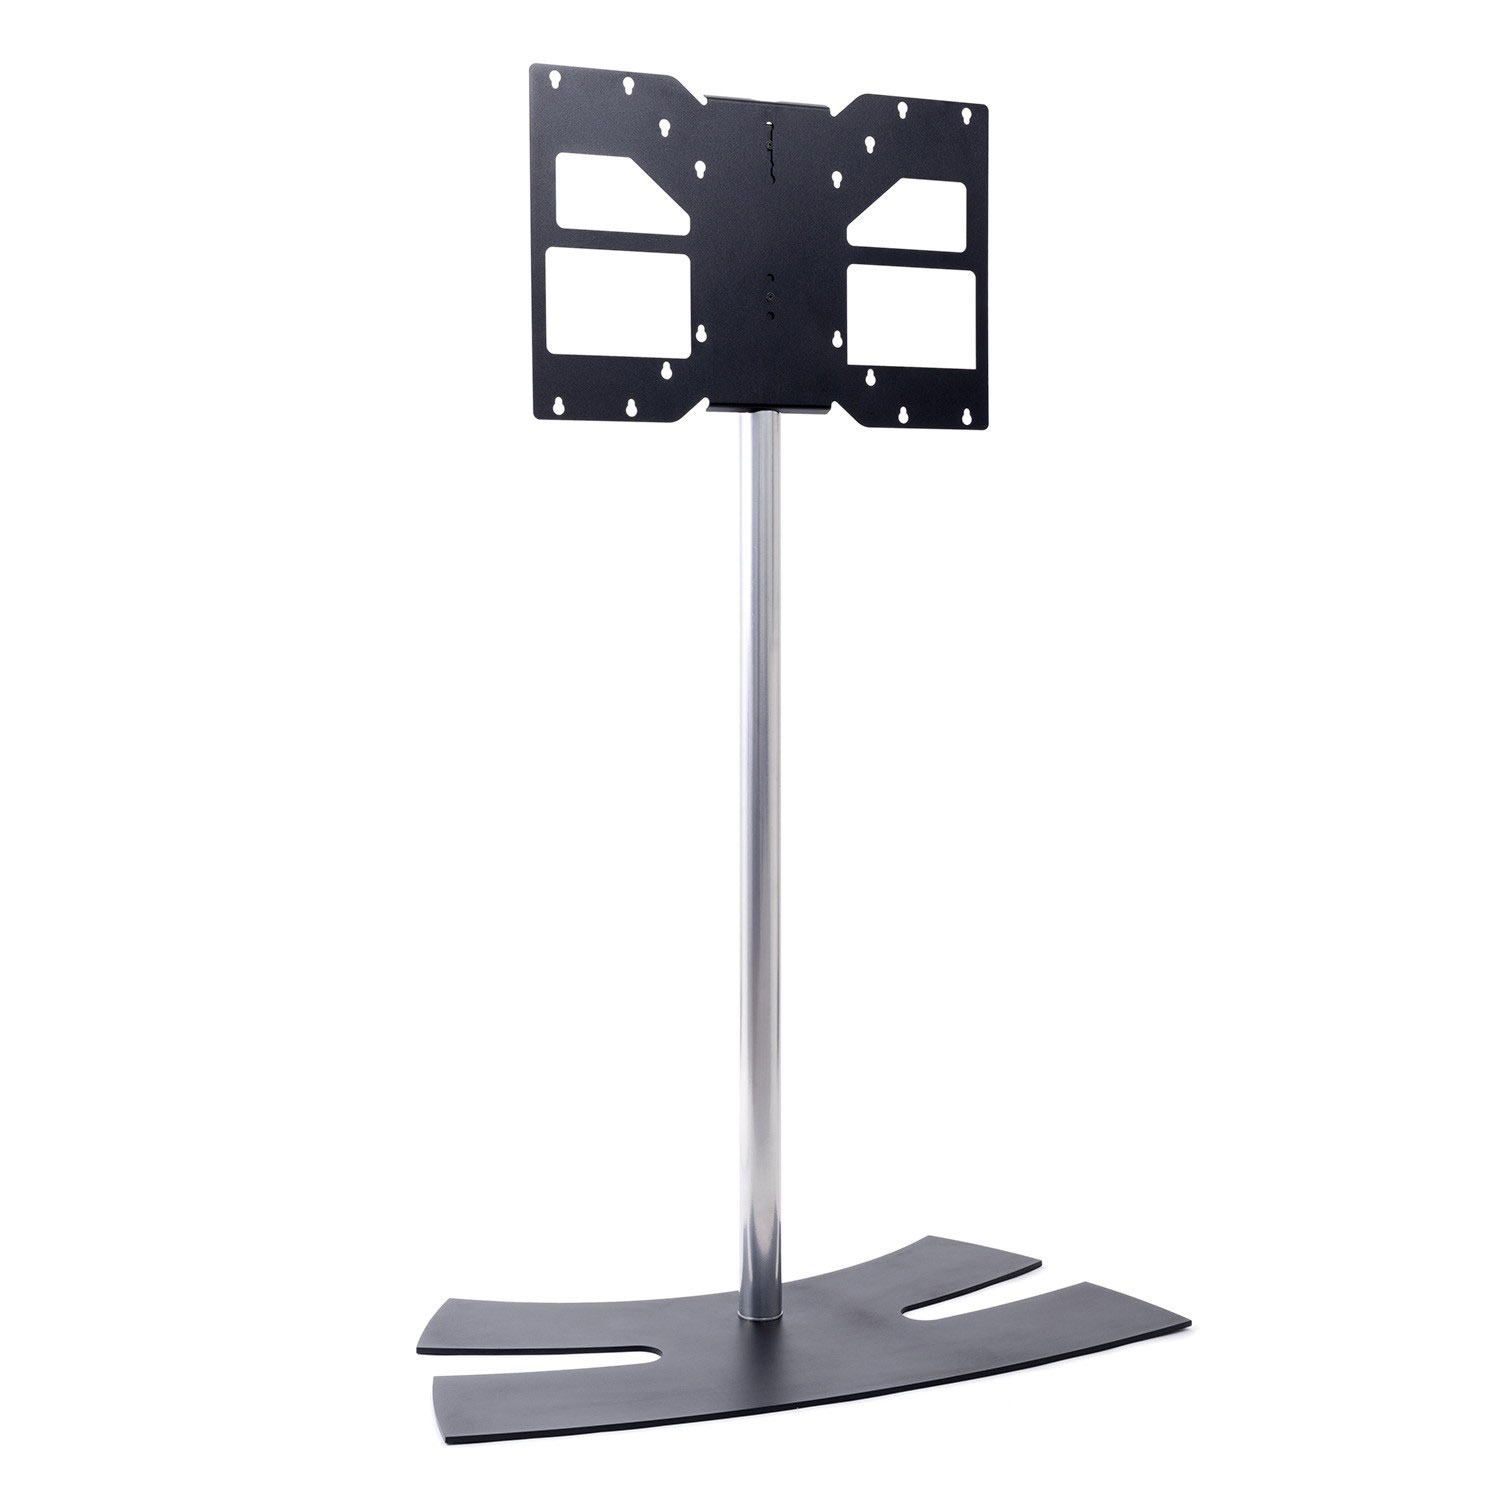 Erard lux up 1600xl noir 038442 achat vente support for Table pour televiseur ecran plat